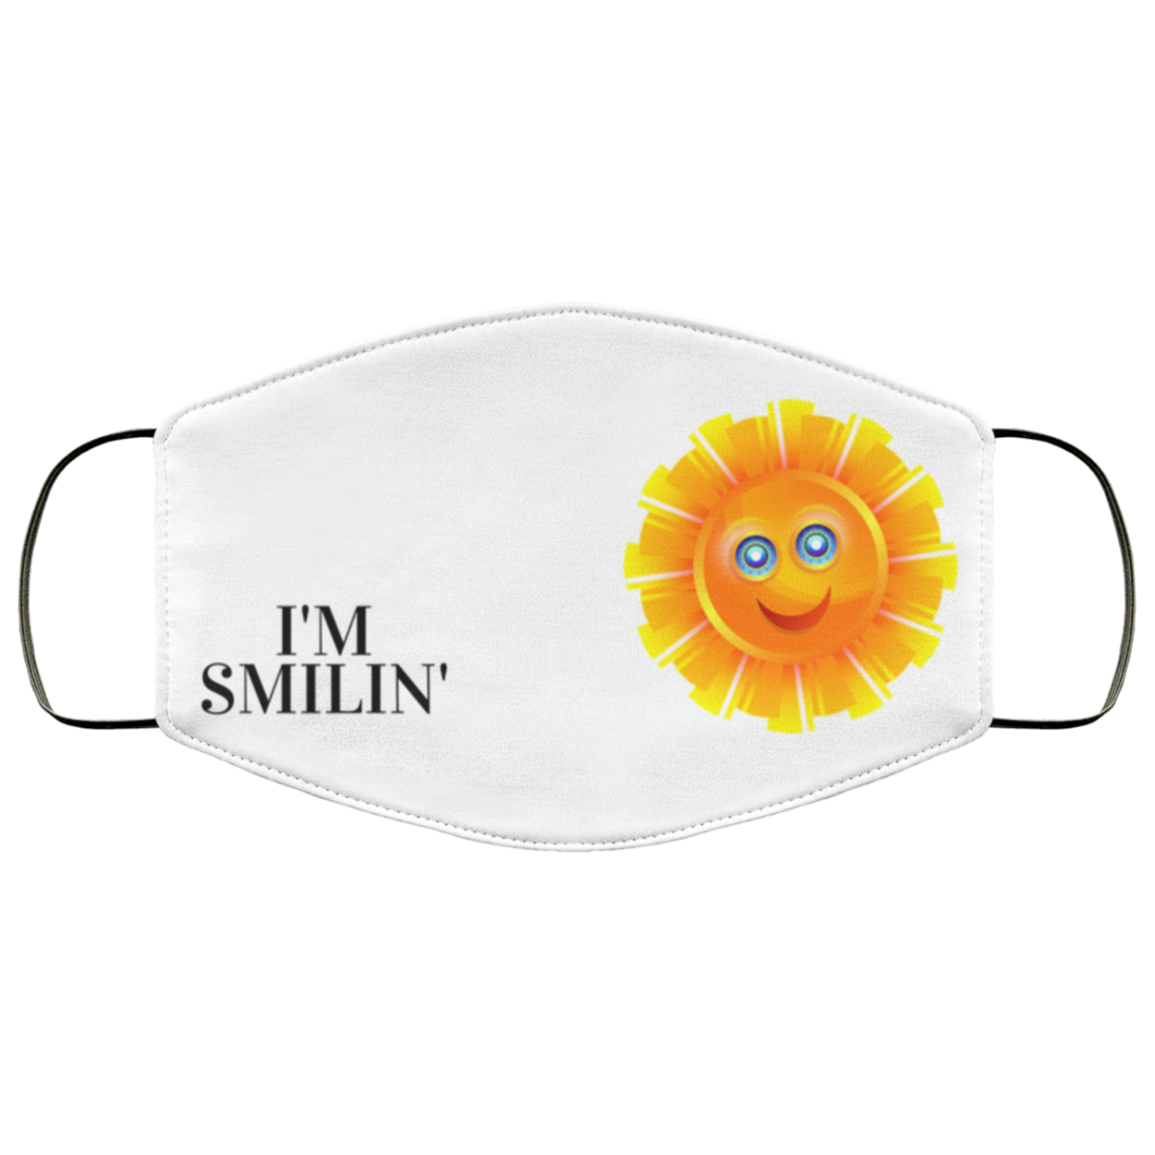 Smilin Face Mask - OMG I Really Want That